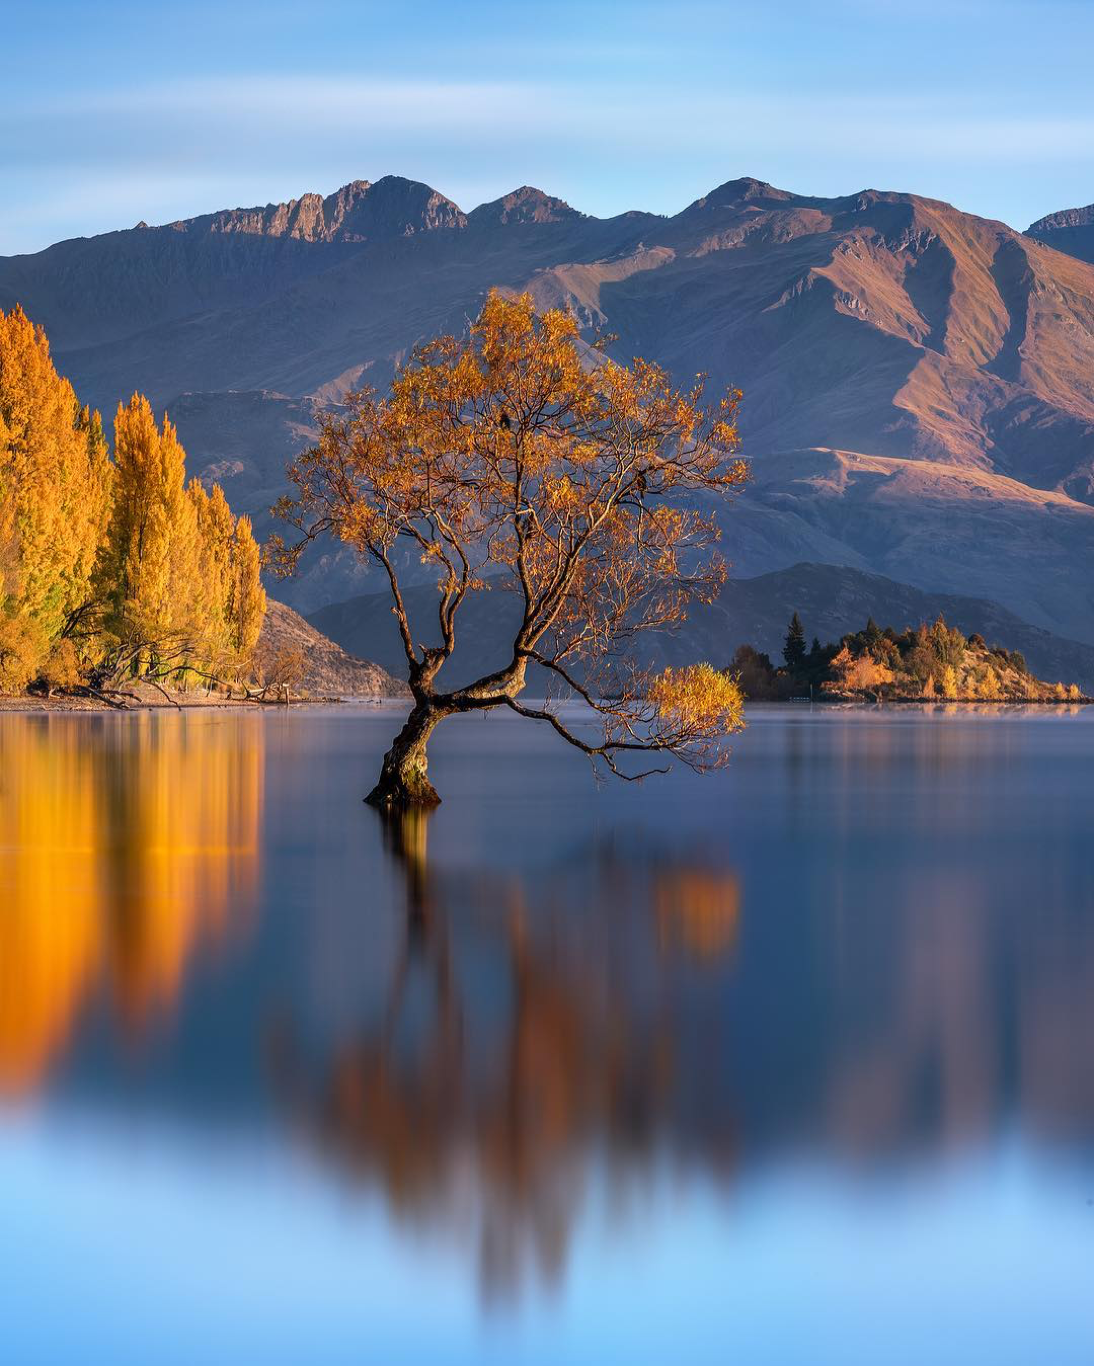 Fantastic view of the Wanaka Tree. | Photo by Chrystal Hutchinson (@midnight_photography on IG)